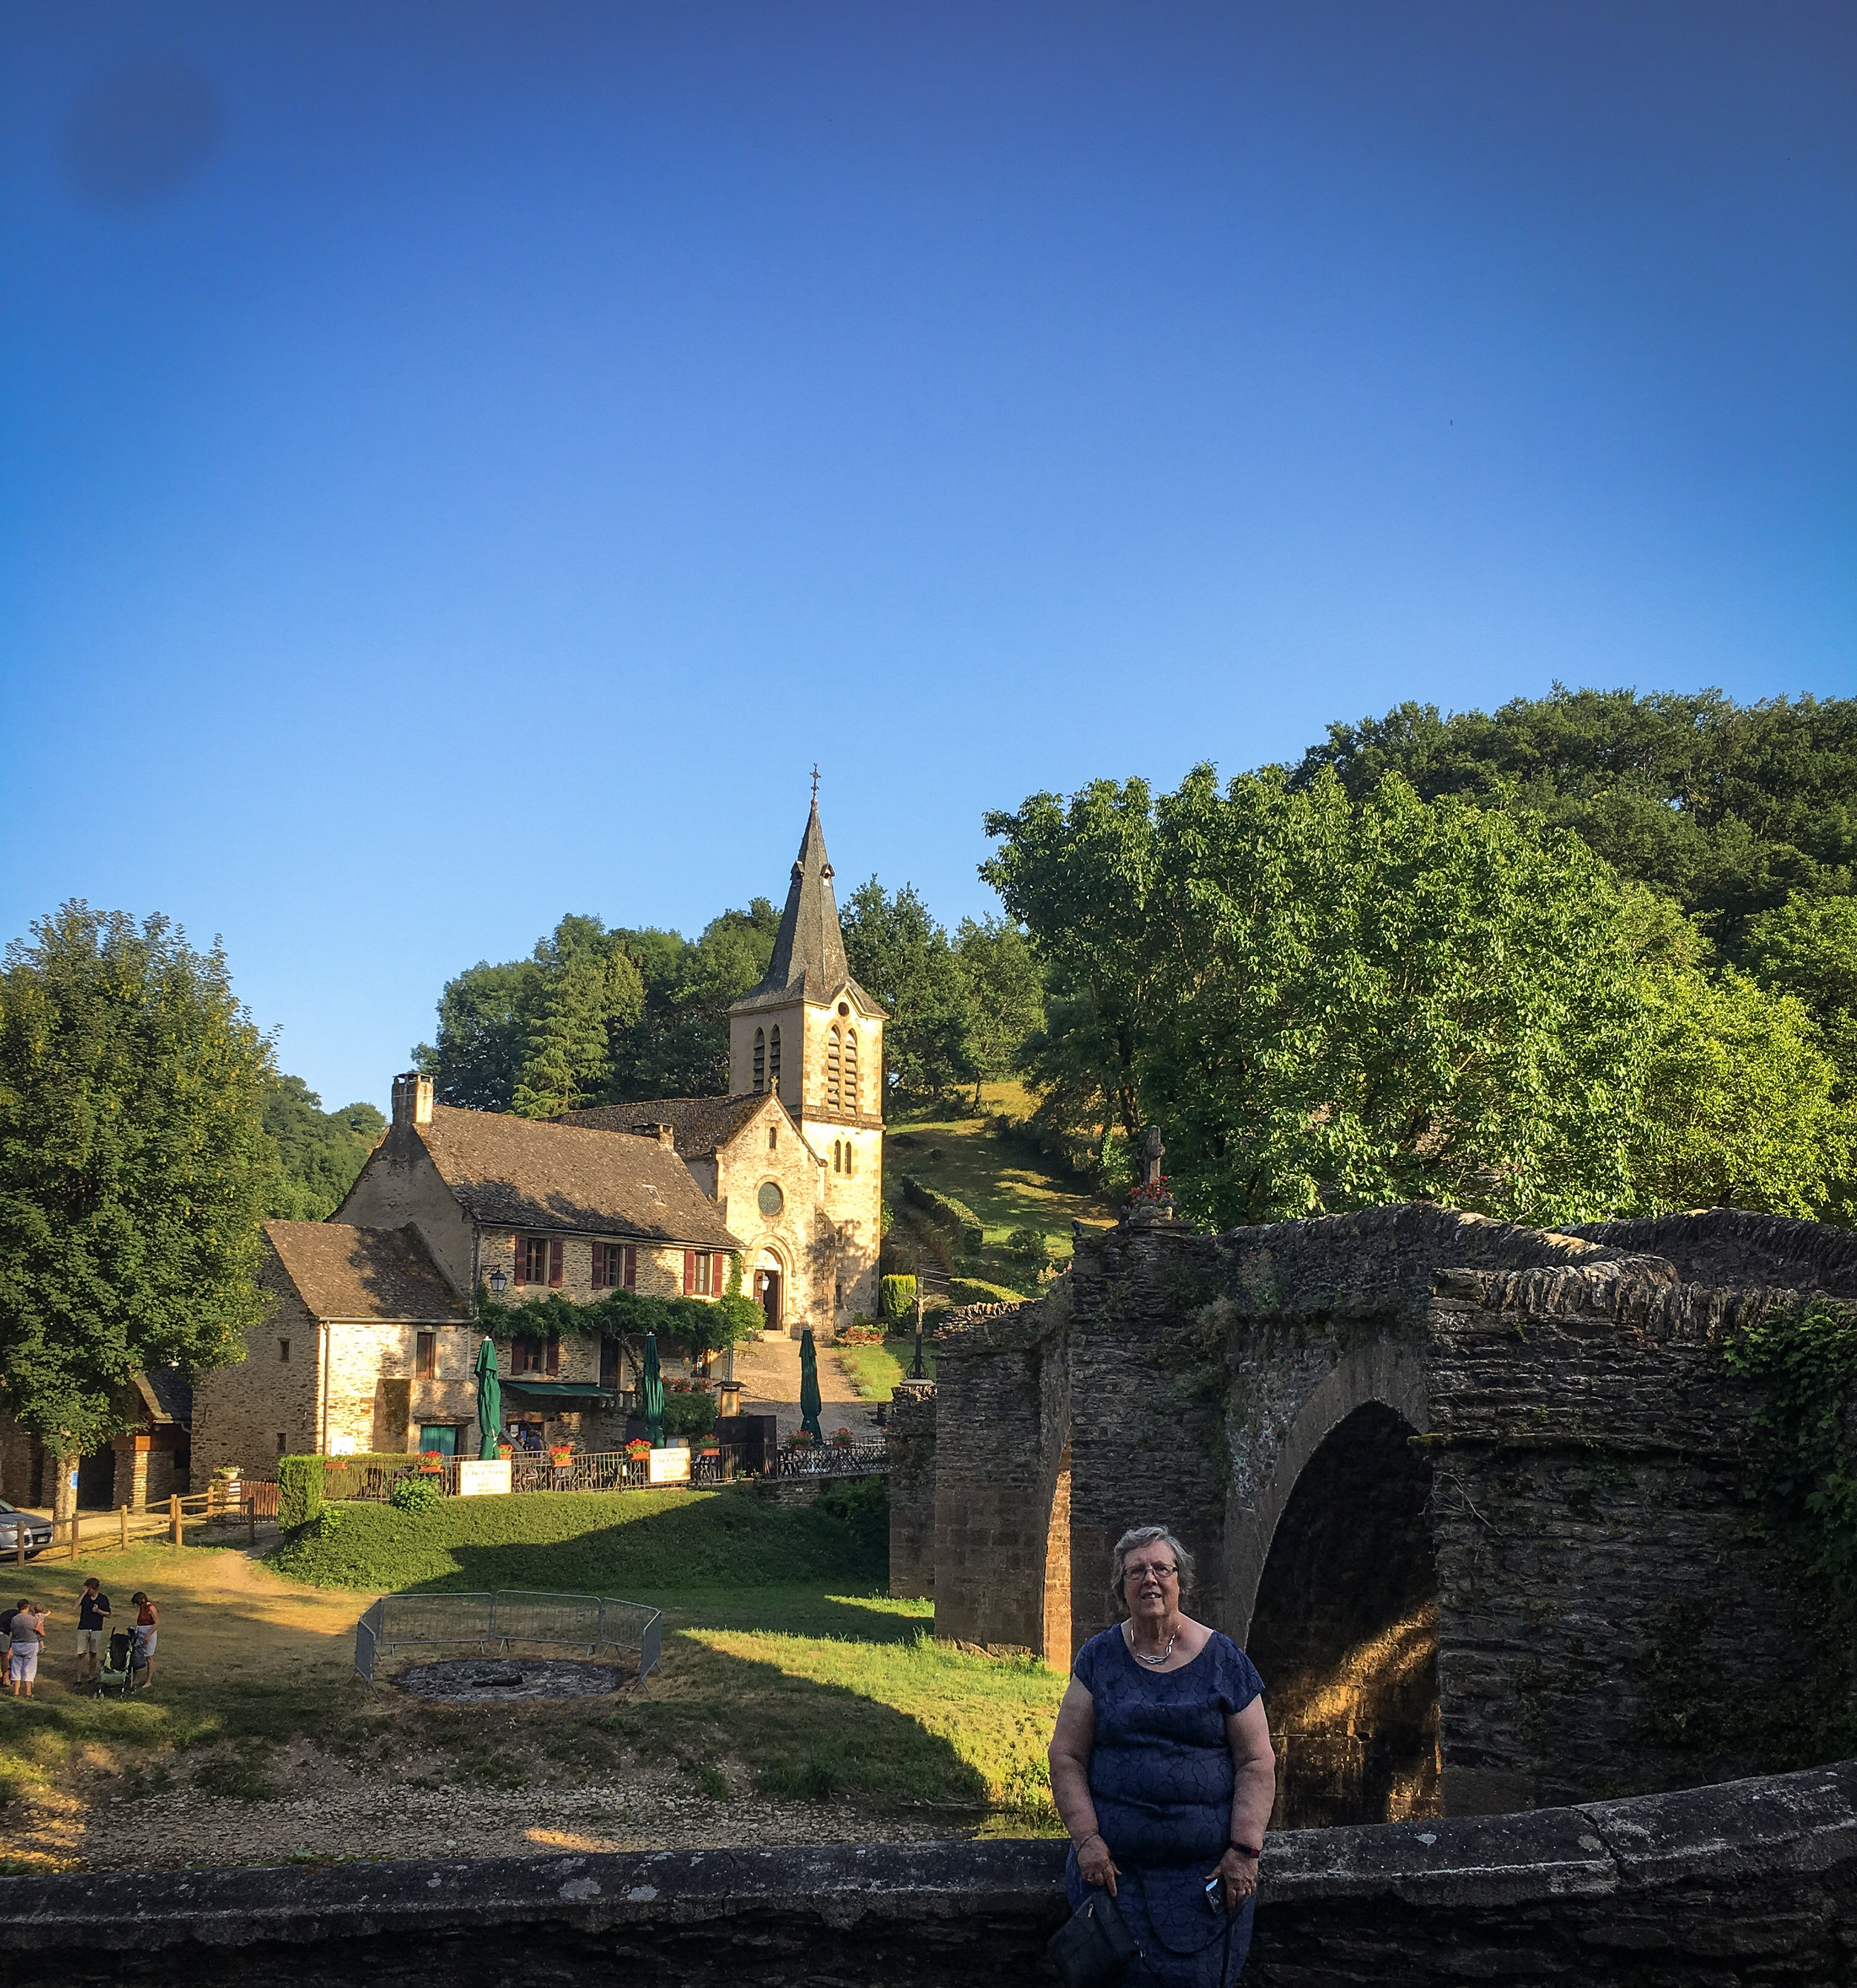 Carol trying to stay in the cool by the Aveyron river, the old cobblestone bridge leading to the church, a few houses, a caf é  and its welcoming terrace. It was a very hot day when visiting Belcastel village and its marvelous medieval château.